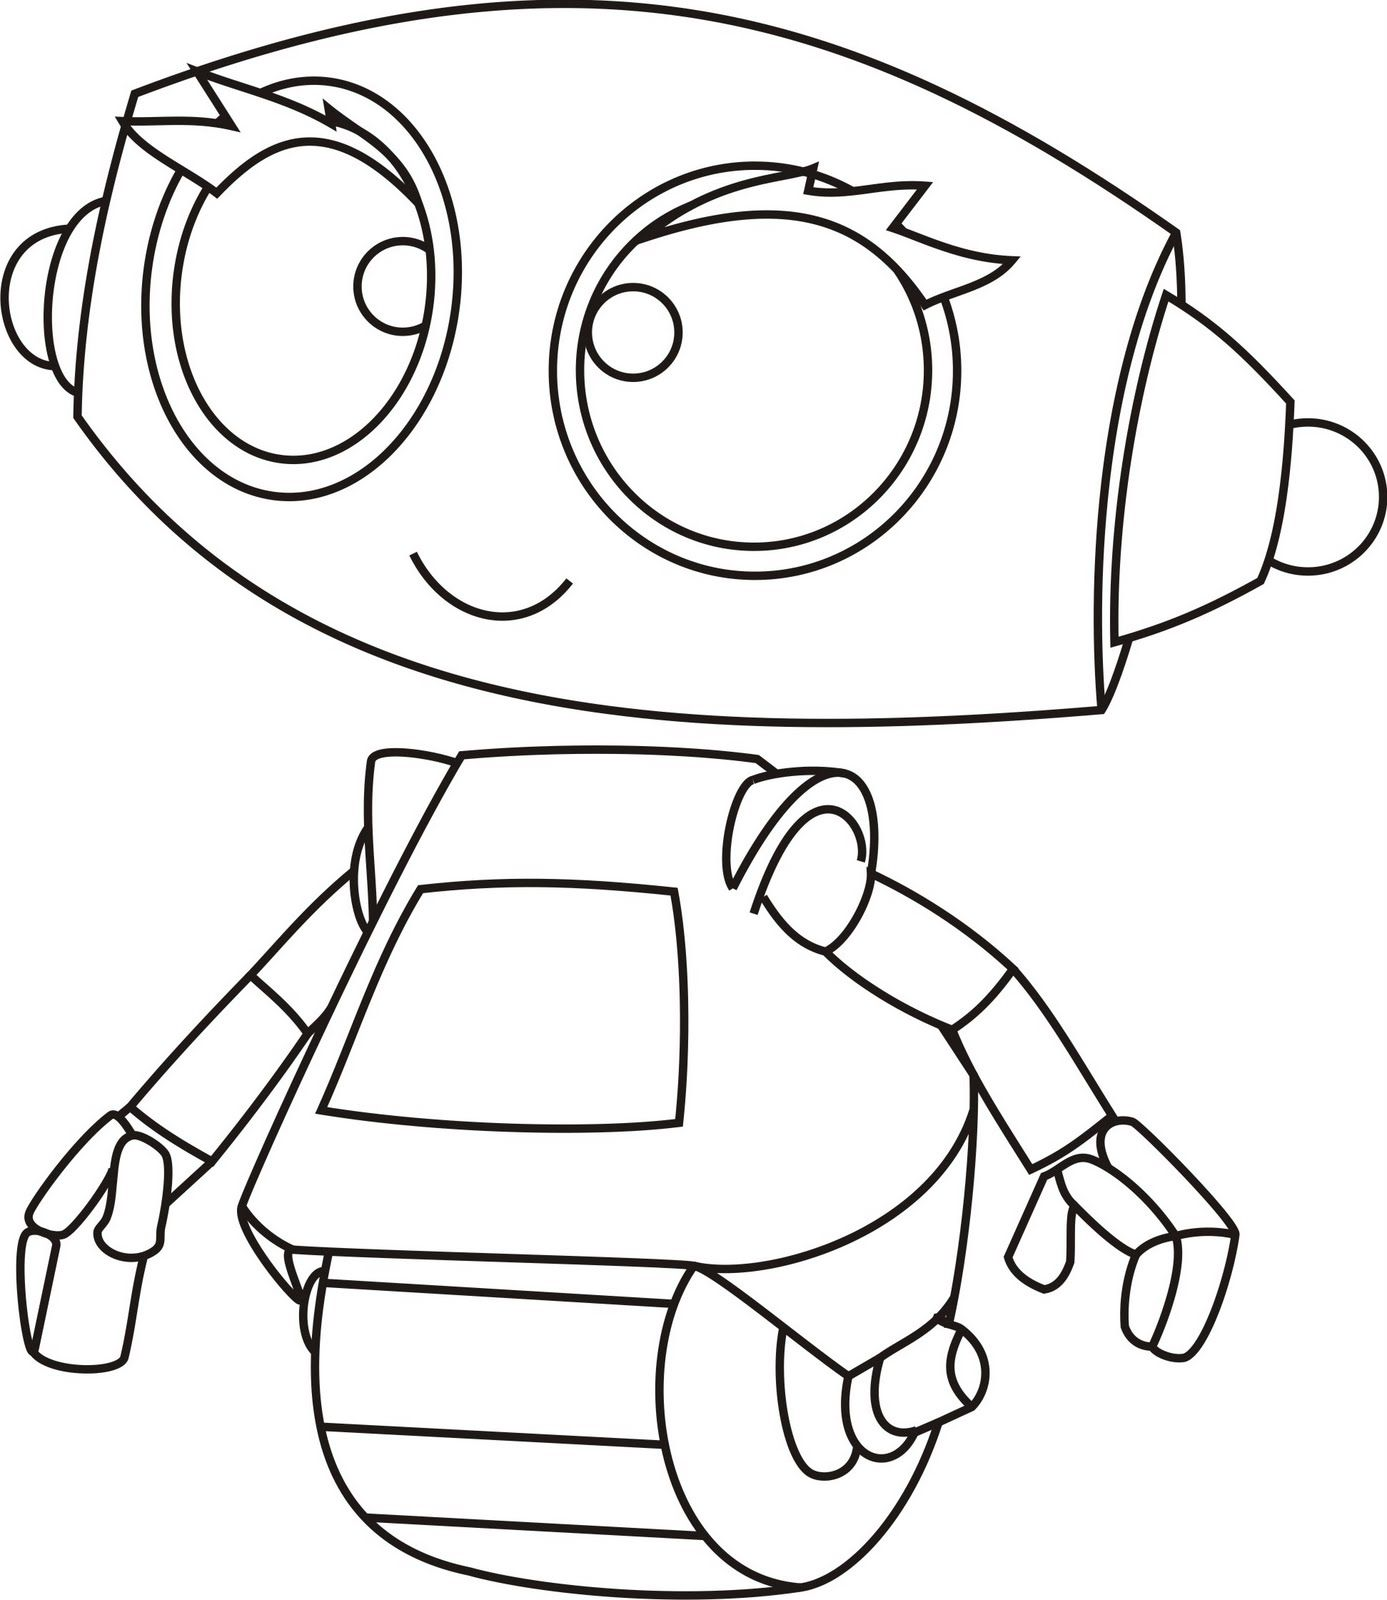 Image result for How to draw Happy Robot Faces Image